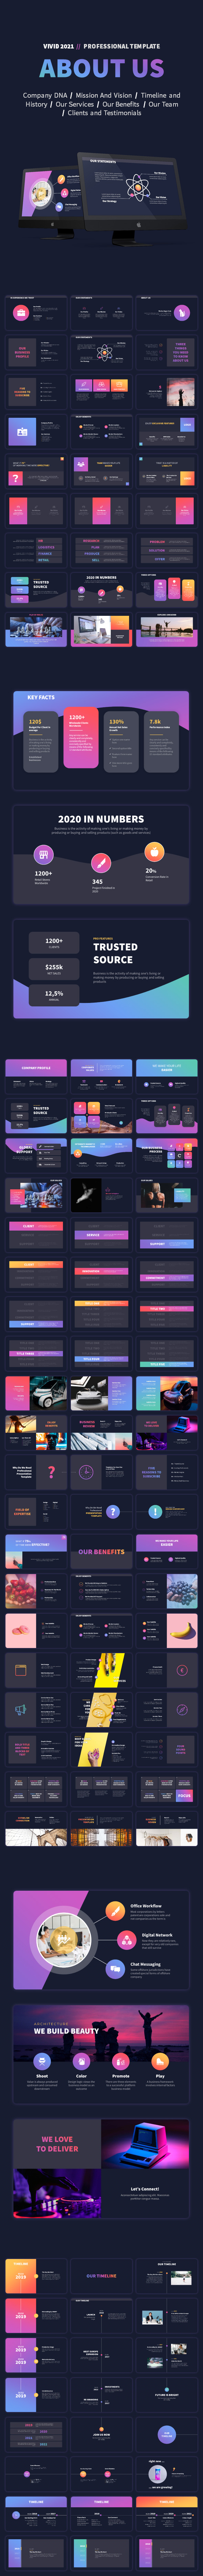 VIVID 2021 - Professional PowerPoint Presentation Template - 13